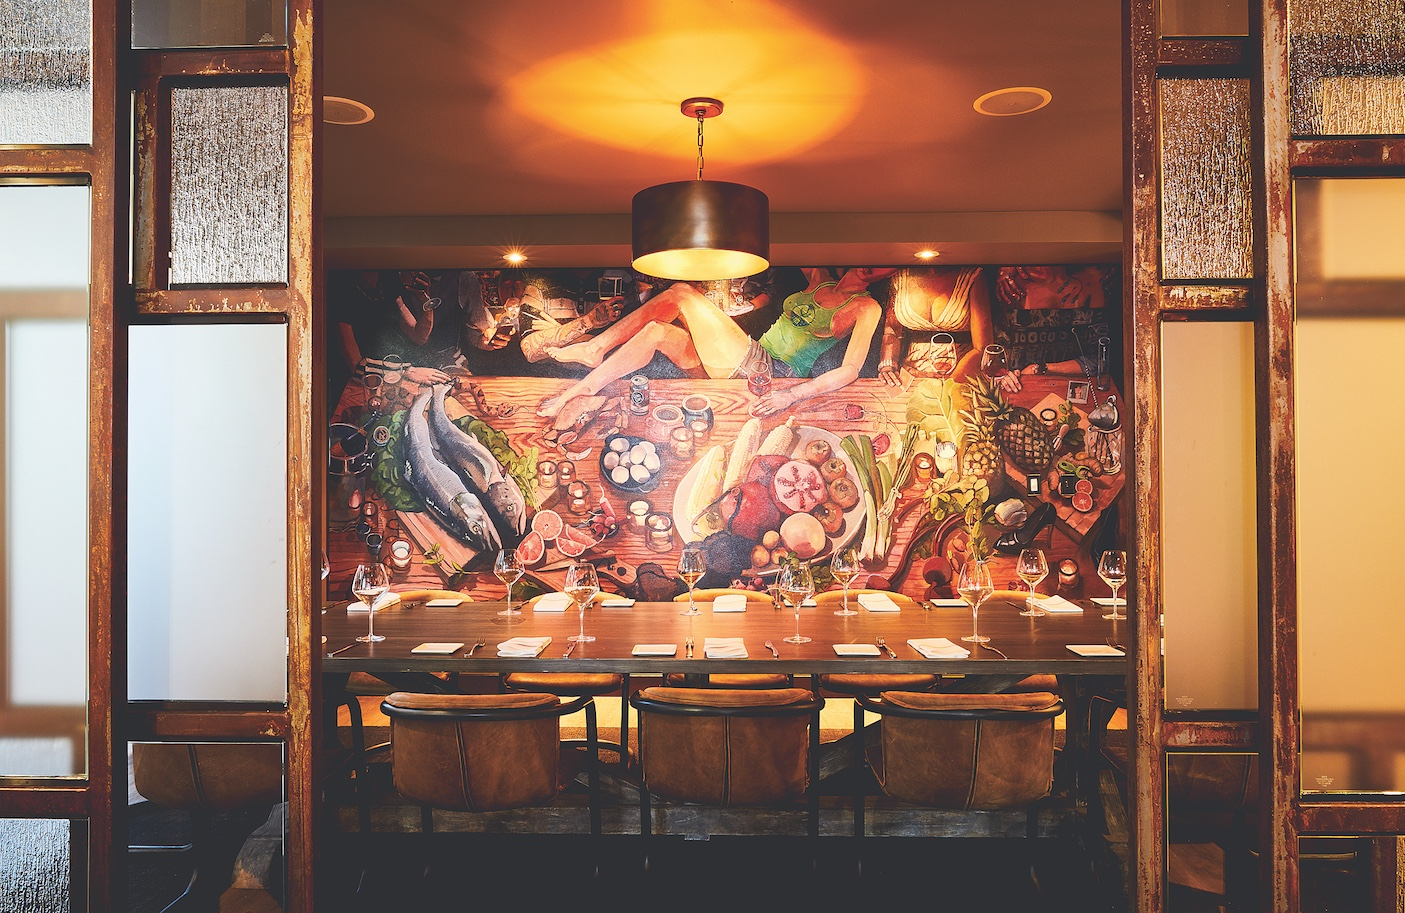 A canvas mural by Sacramento artist Ryan Seng depicting a meal sourced from local purveyors like Passmore Ranch and Del Rio Botanical fills the back wall of the private chef's table room at Grange to express the restaurant's farm-to-fork focus. (Photo by Aubrie Pick)